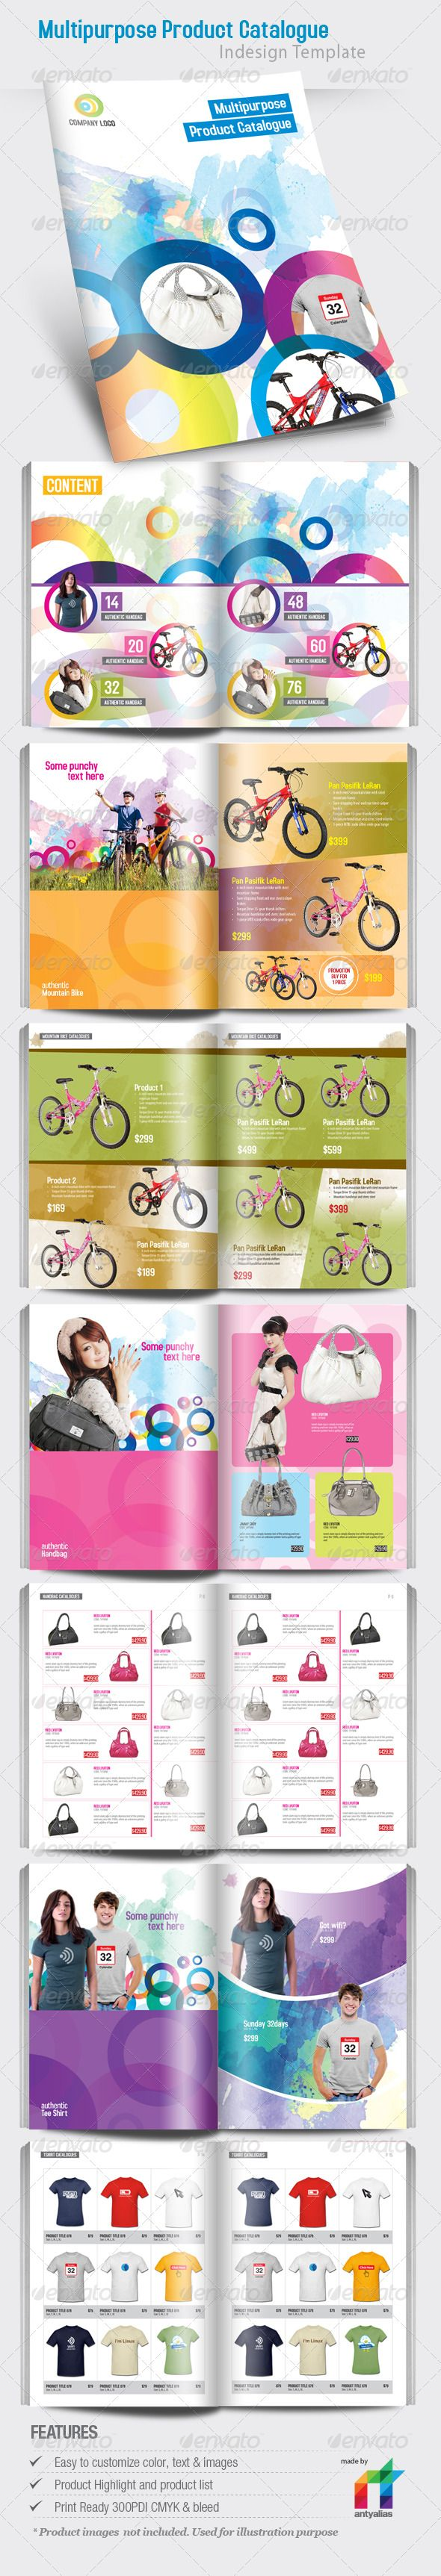 Multipurpose Product Catalogue Indesign Template | Pinterest ...